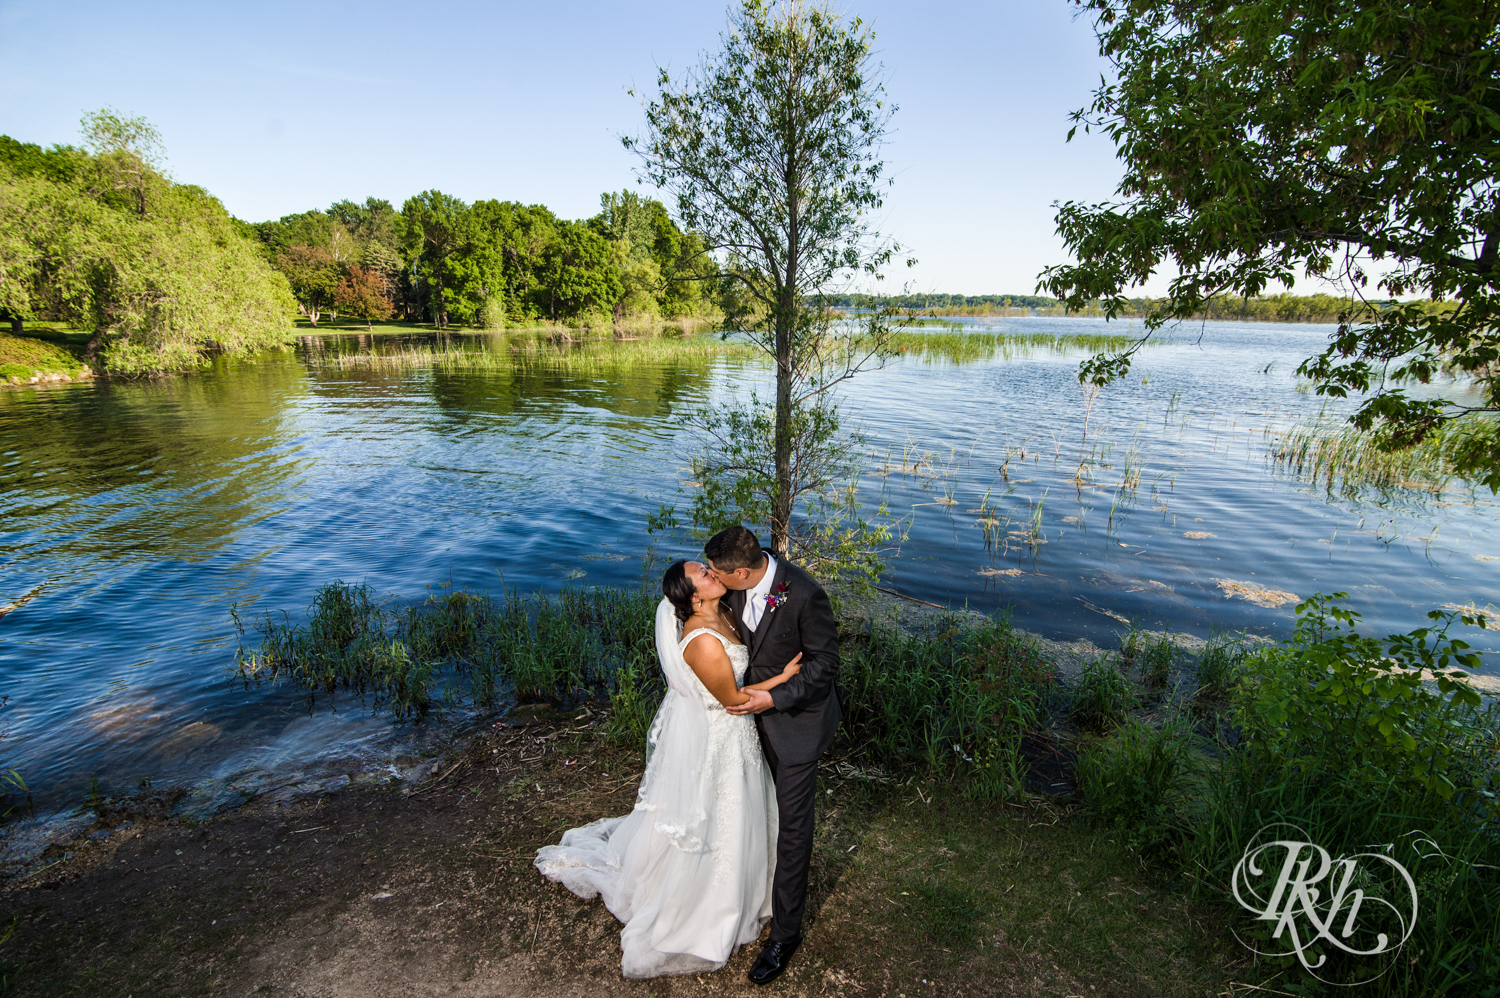 Jana and Paul - Minnesota Wedding Photography - Kellerman's Event Center - RKH Images  (53 of 77).jpg